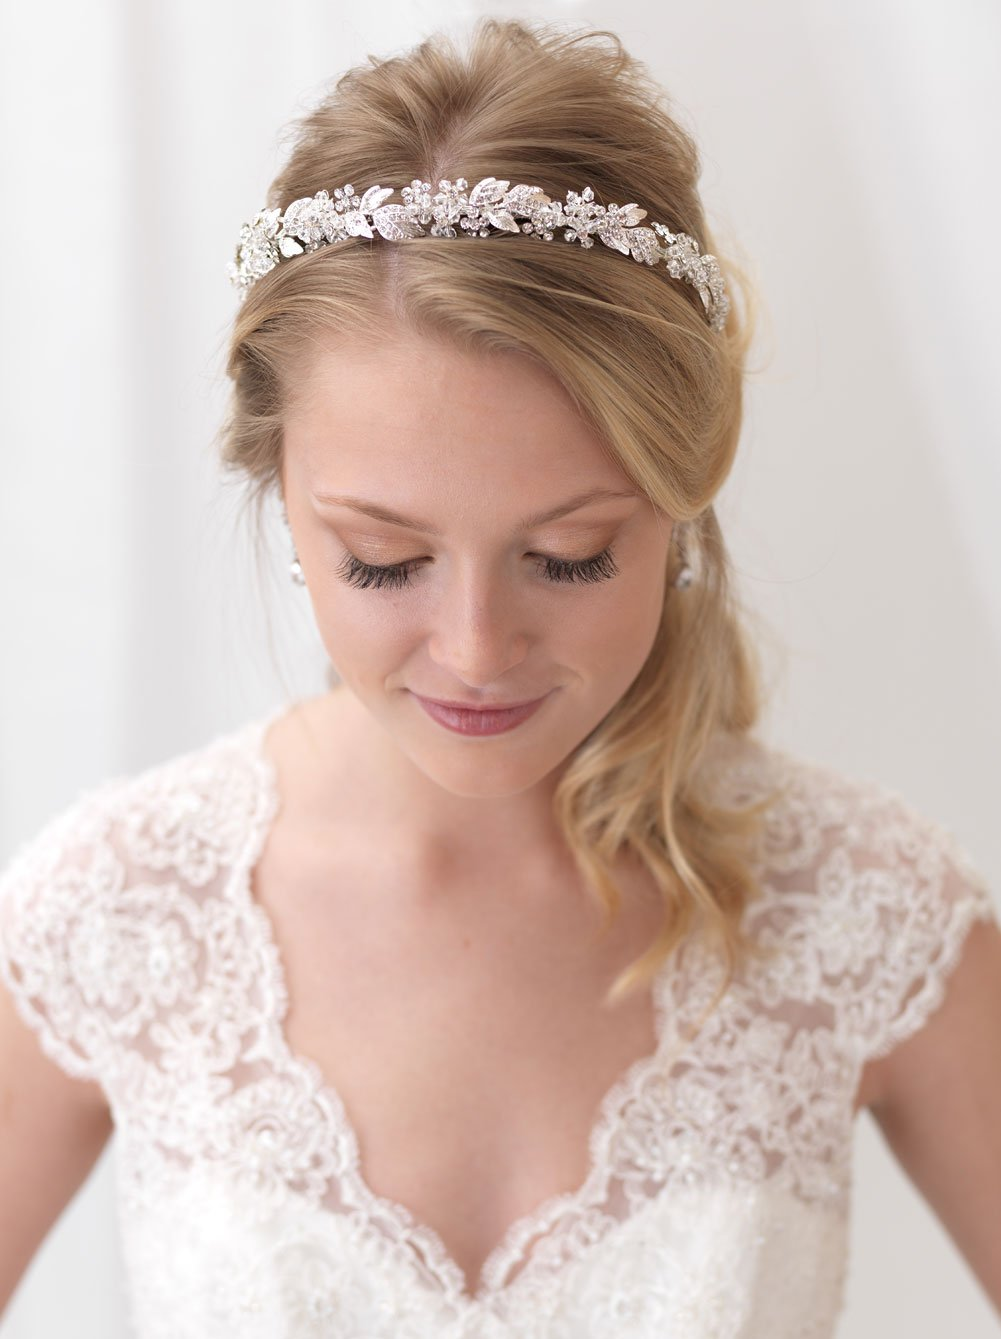 USABride Floral Headband Rhinestone Flower Bridal Headpiece Silver Plated with Rhinestones TI-3300 by USABride (Image #3)